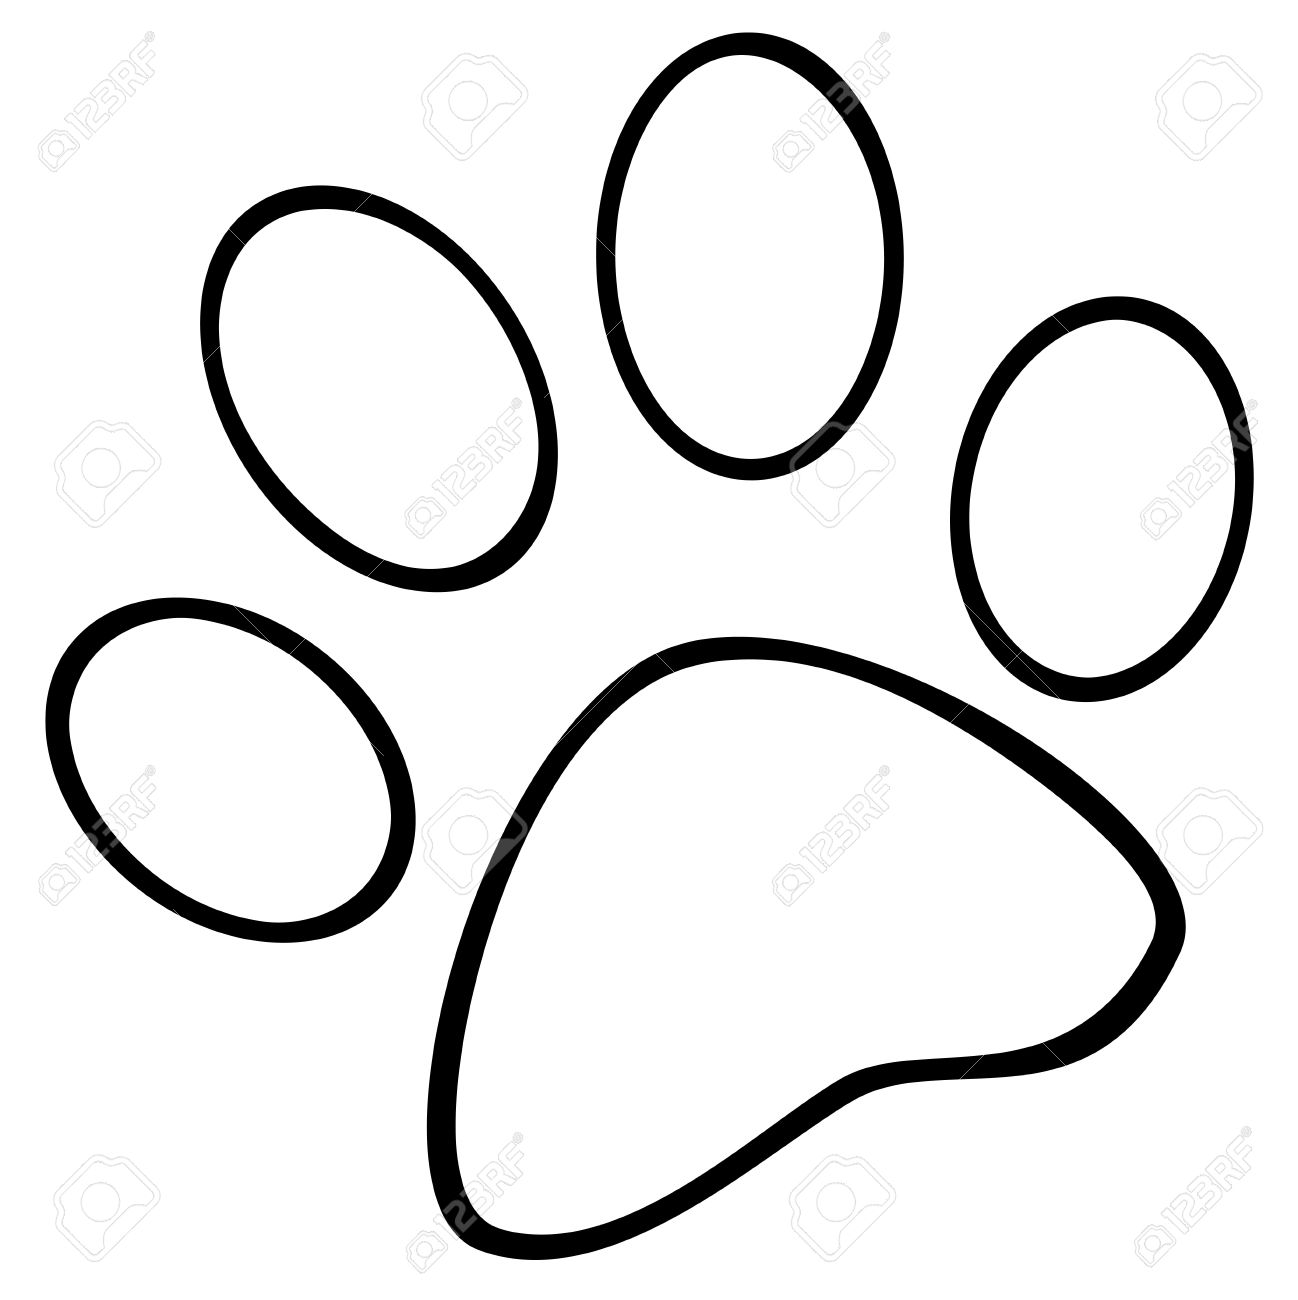 paw print outline redbul energystandardinternational co rh redbul energystandardinternational co paw print clipart black and white dog paw print clipart black and white